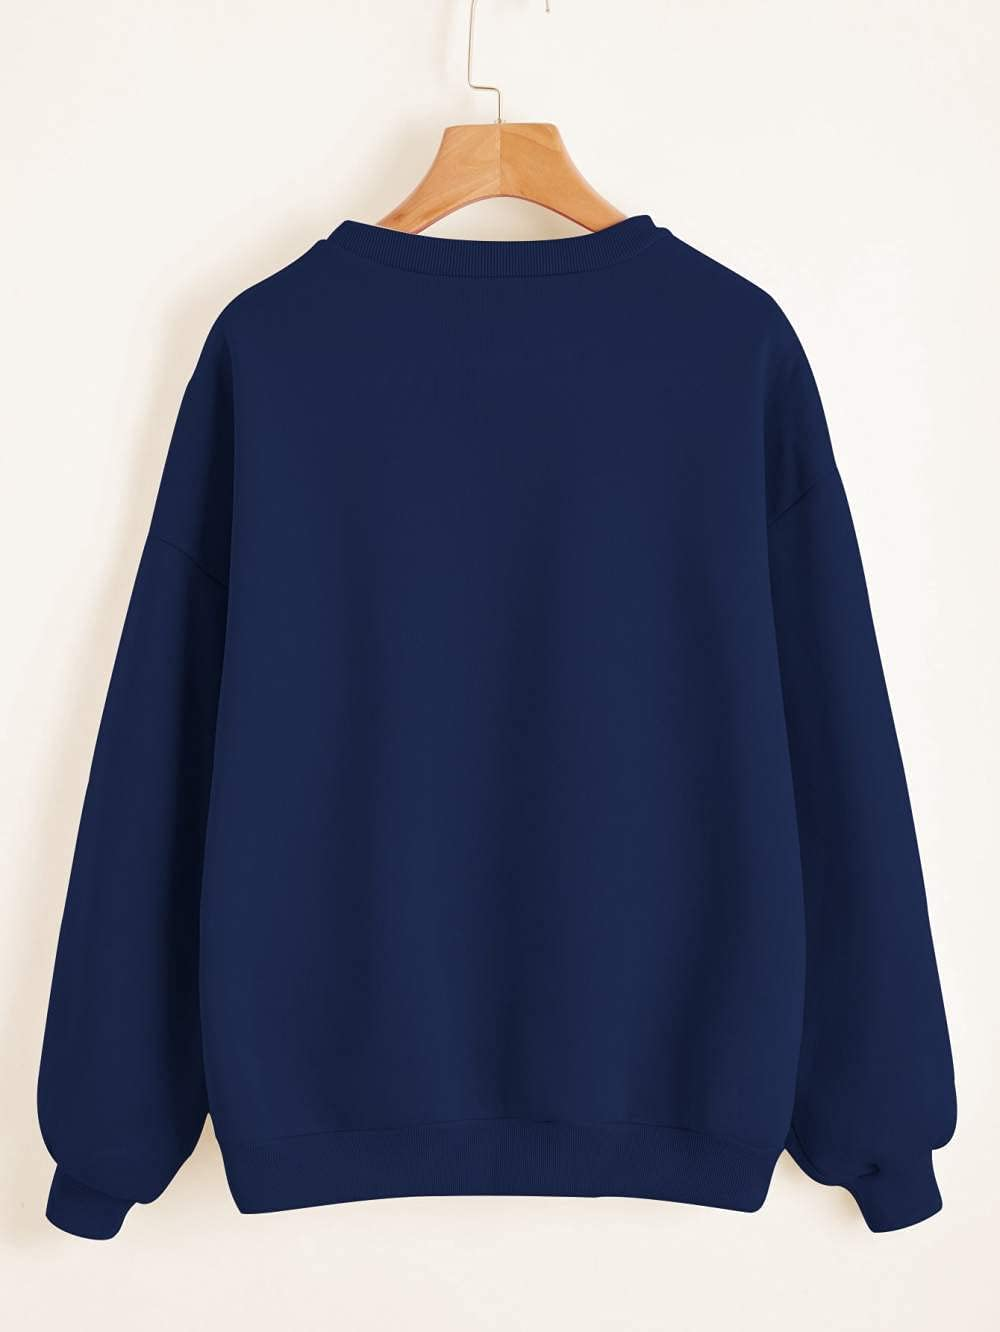 JIAJING Fall Shoulders Solid Color Pullover-S_Navy Blue